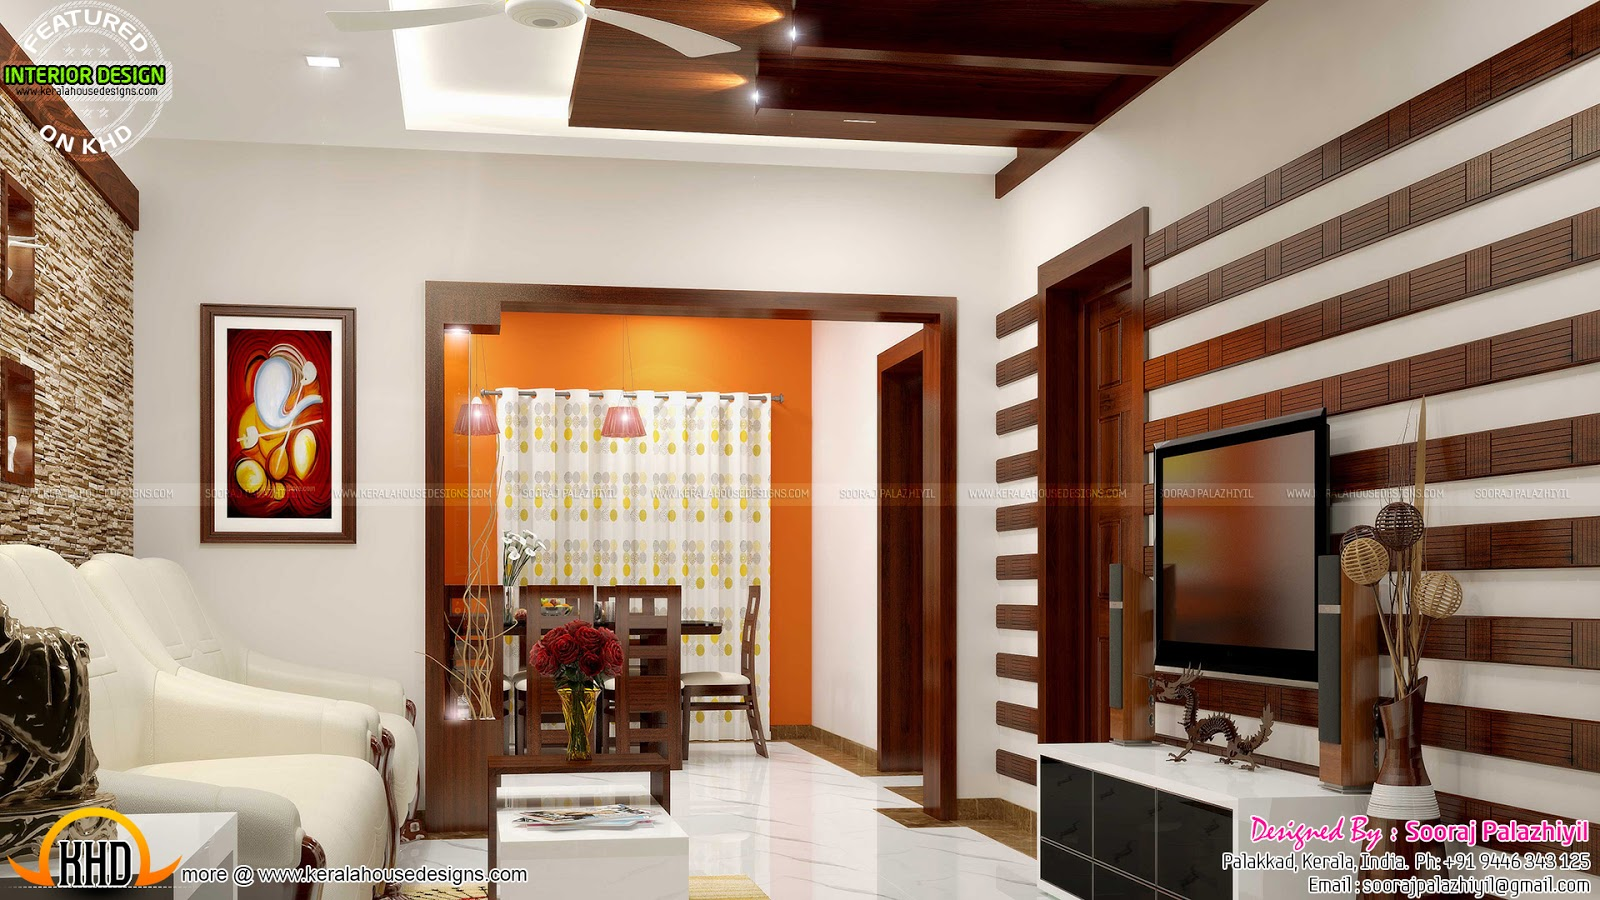 Simple apartment interior in kerala kerala home design for Apartment interior designs india